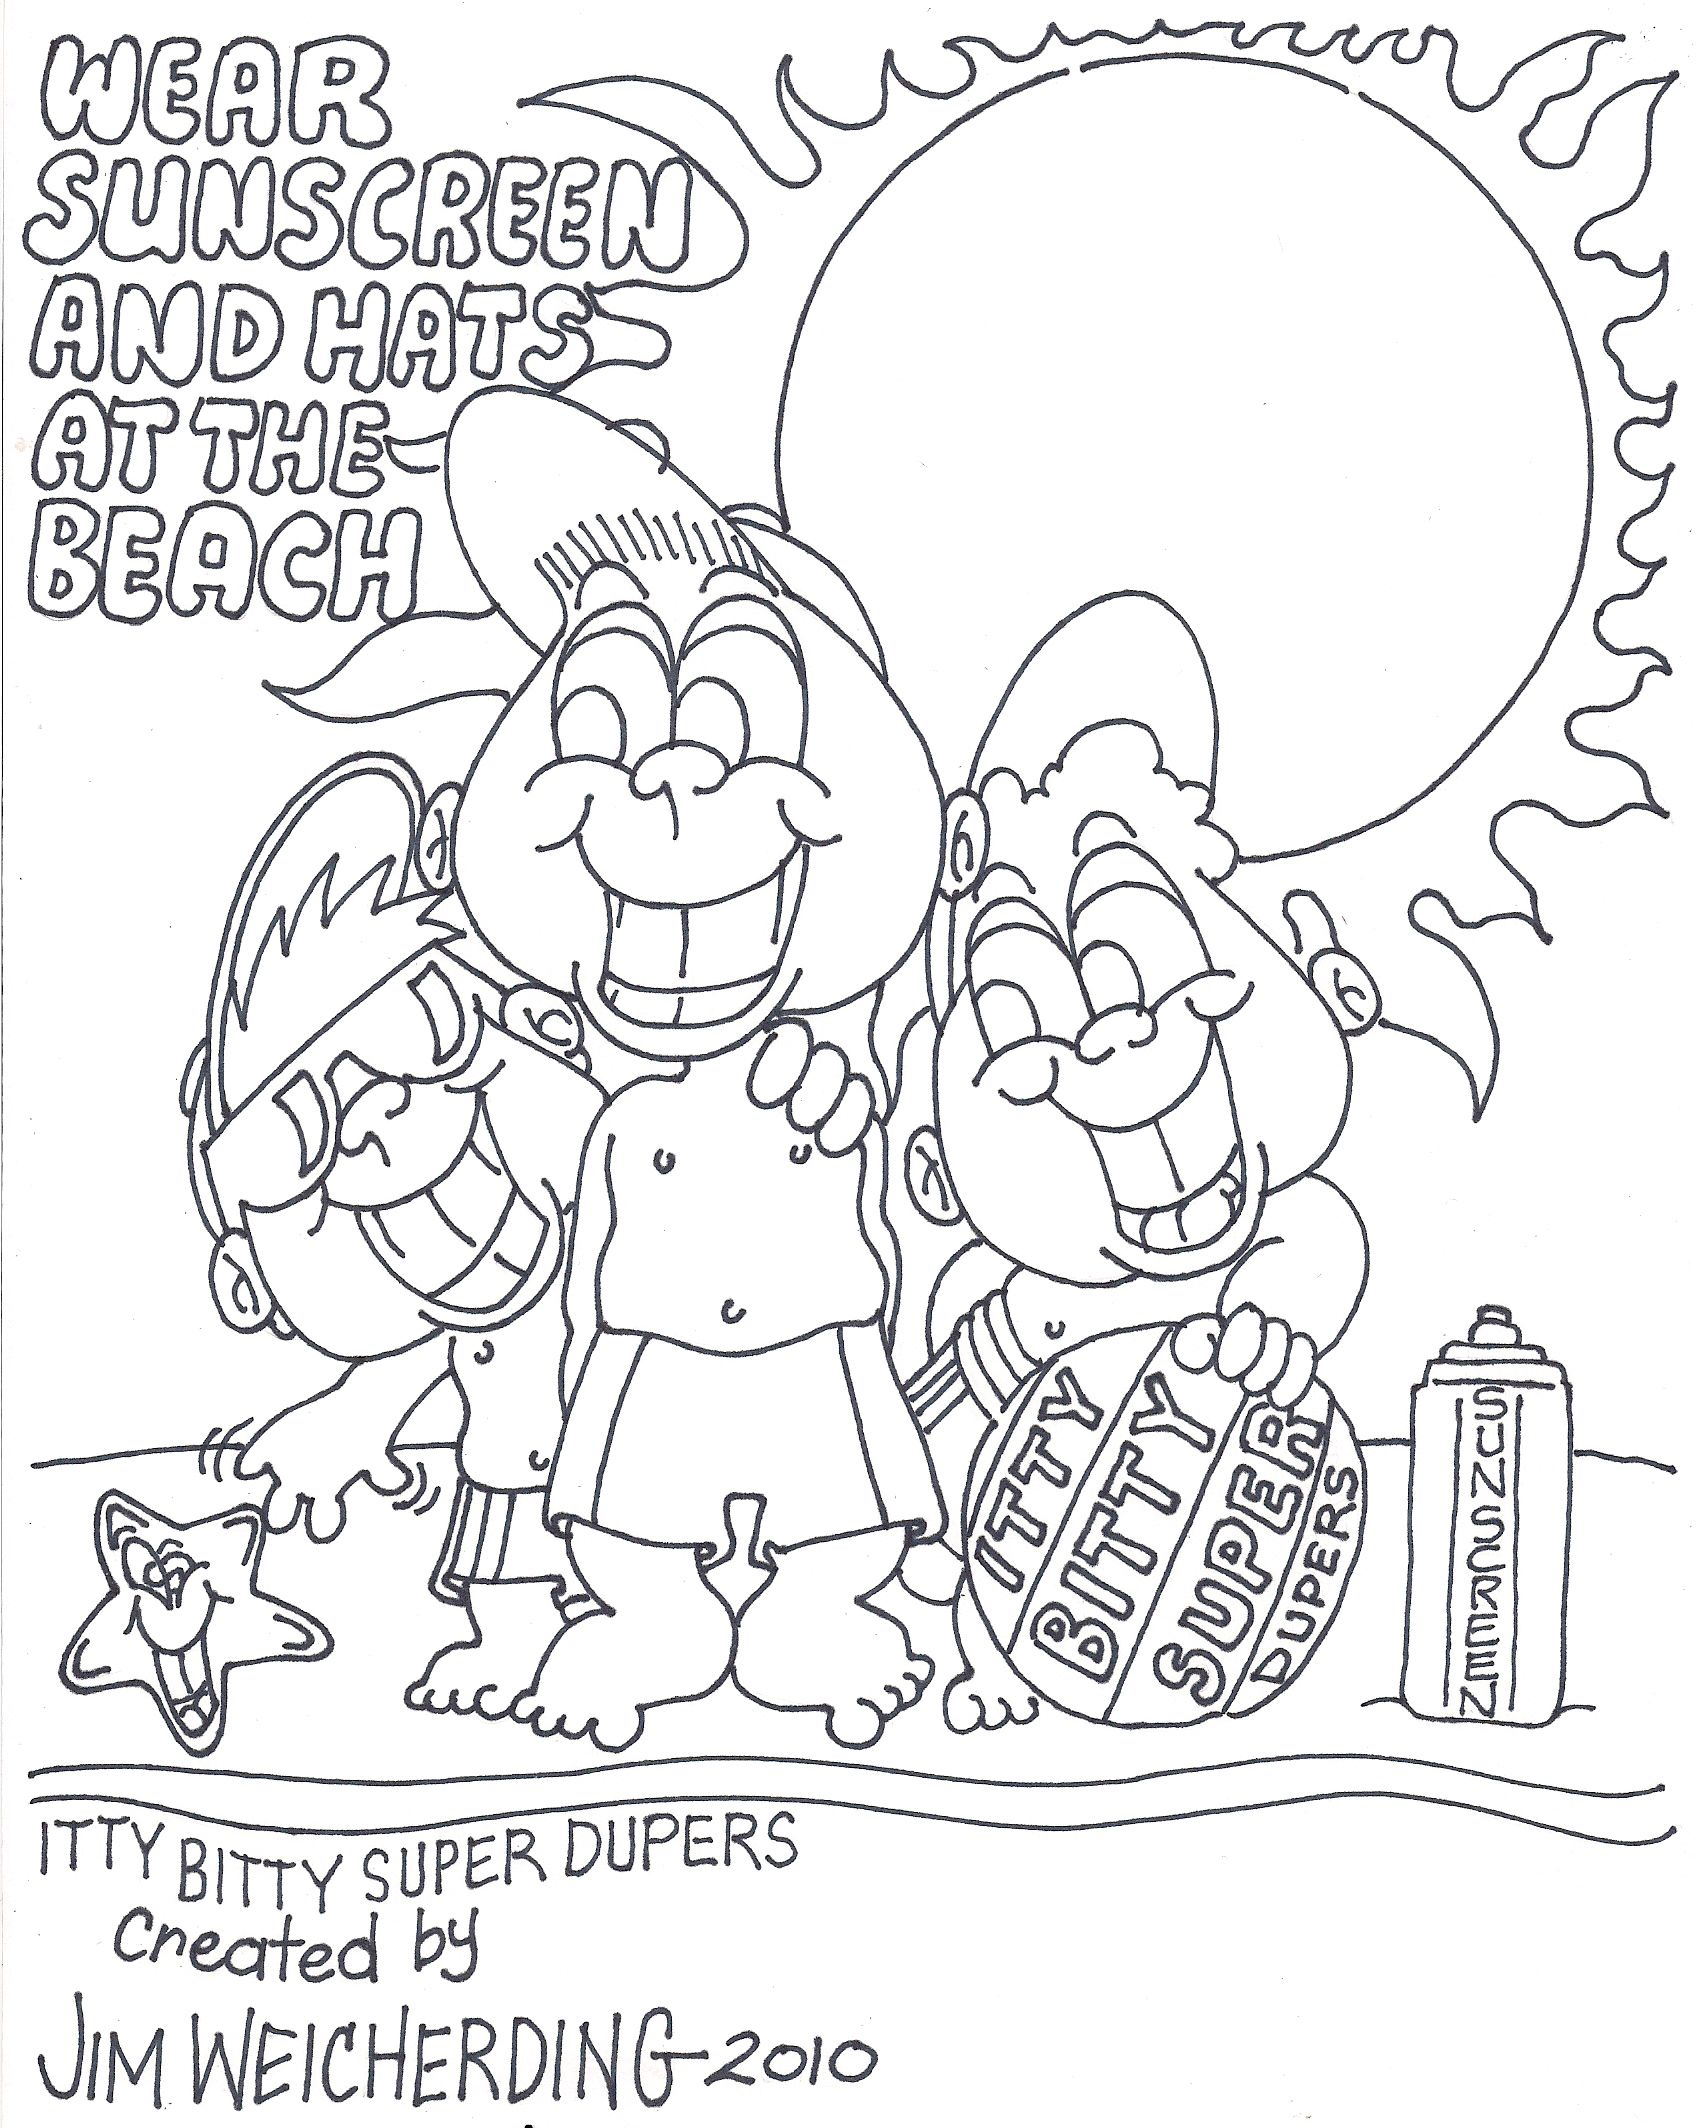 coloring pages for kids safety - photo#17